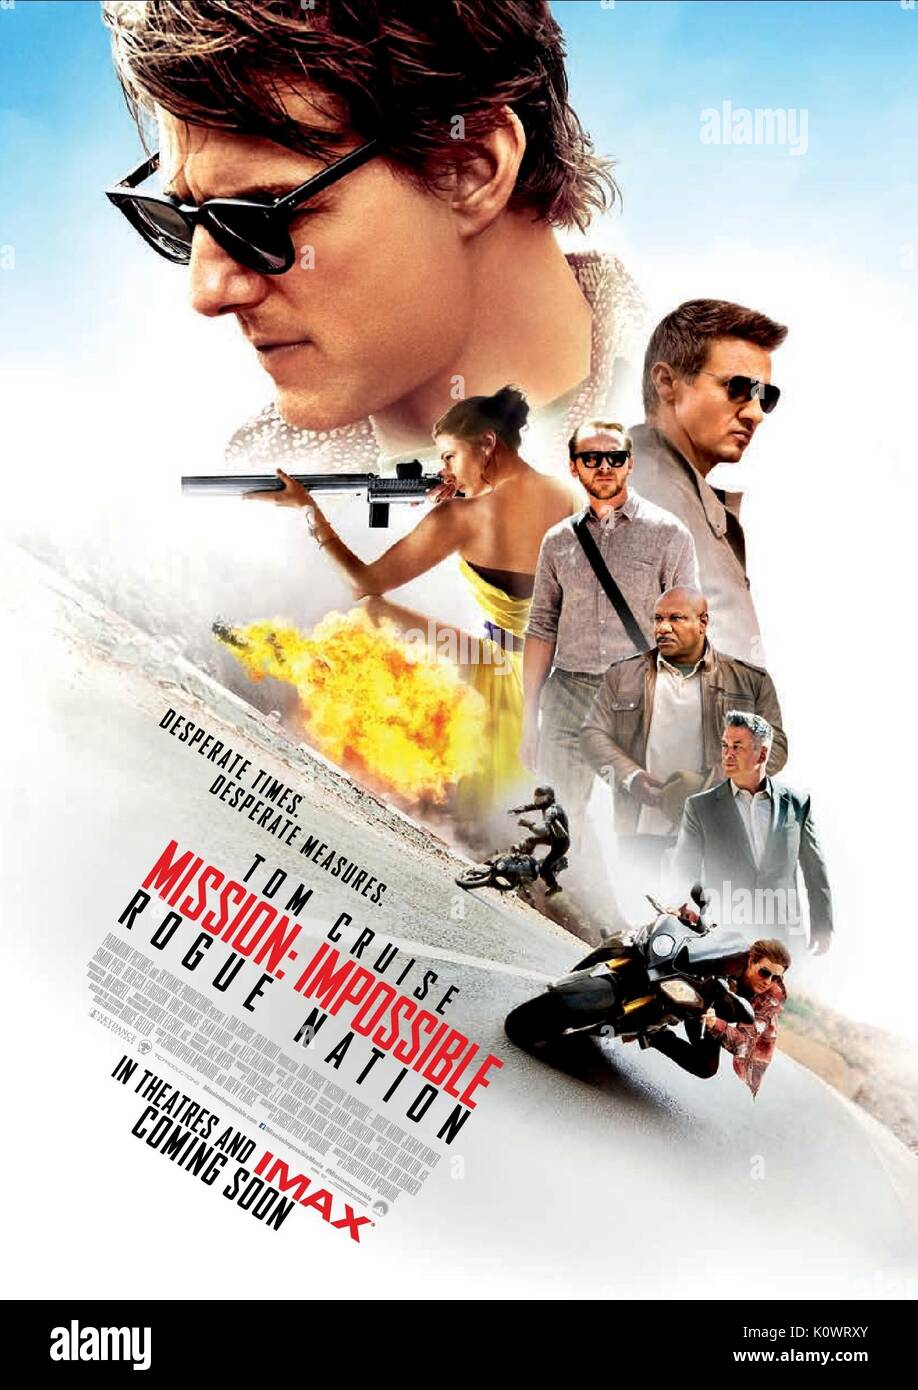 TOM CRUISE & JEREMY RENNER MOVIE POSTER MISSION: IMPOSSIBLE